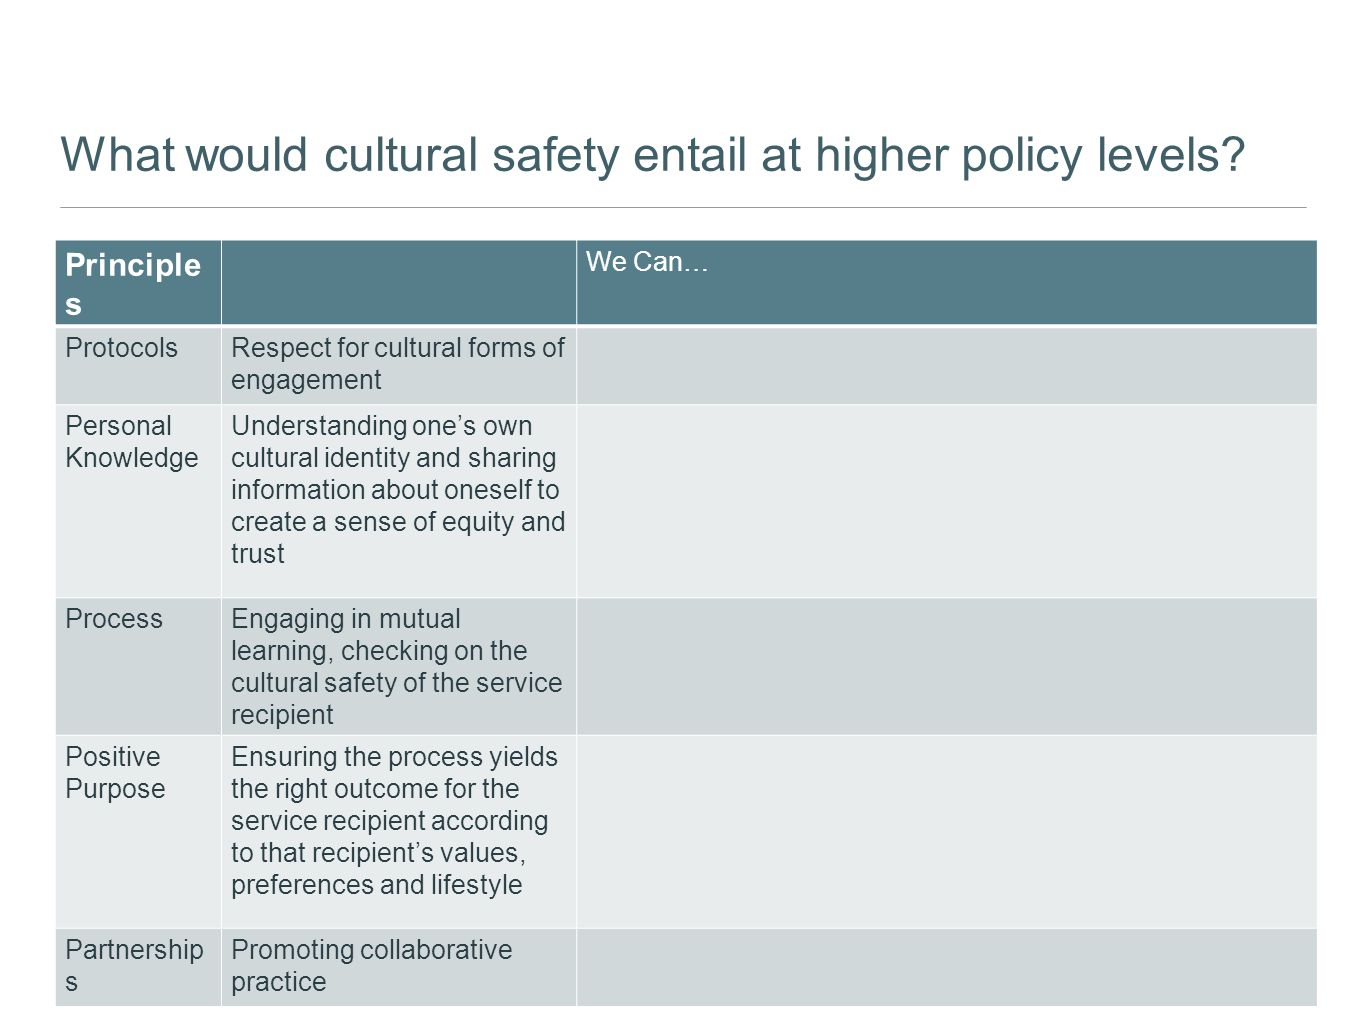 What would cultural safety entail at higher policy levels